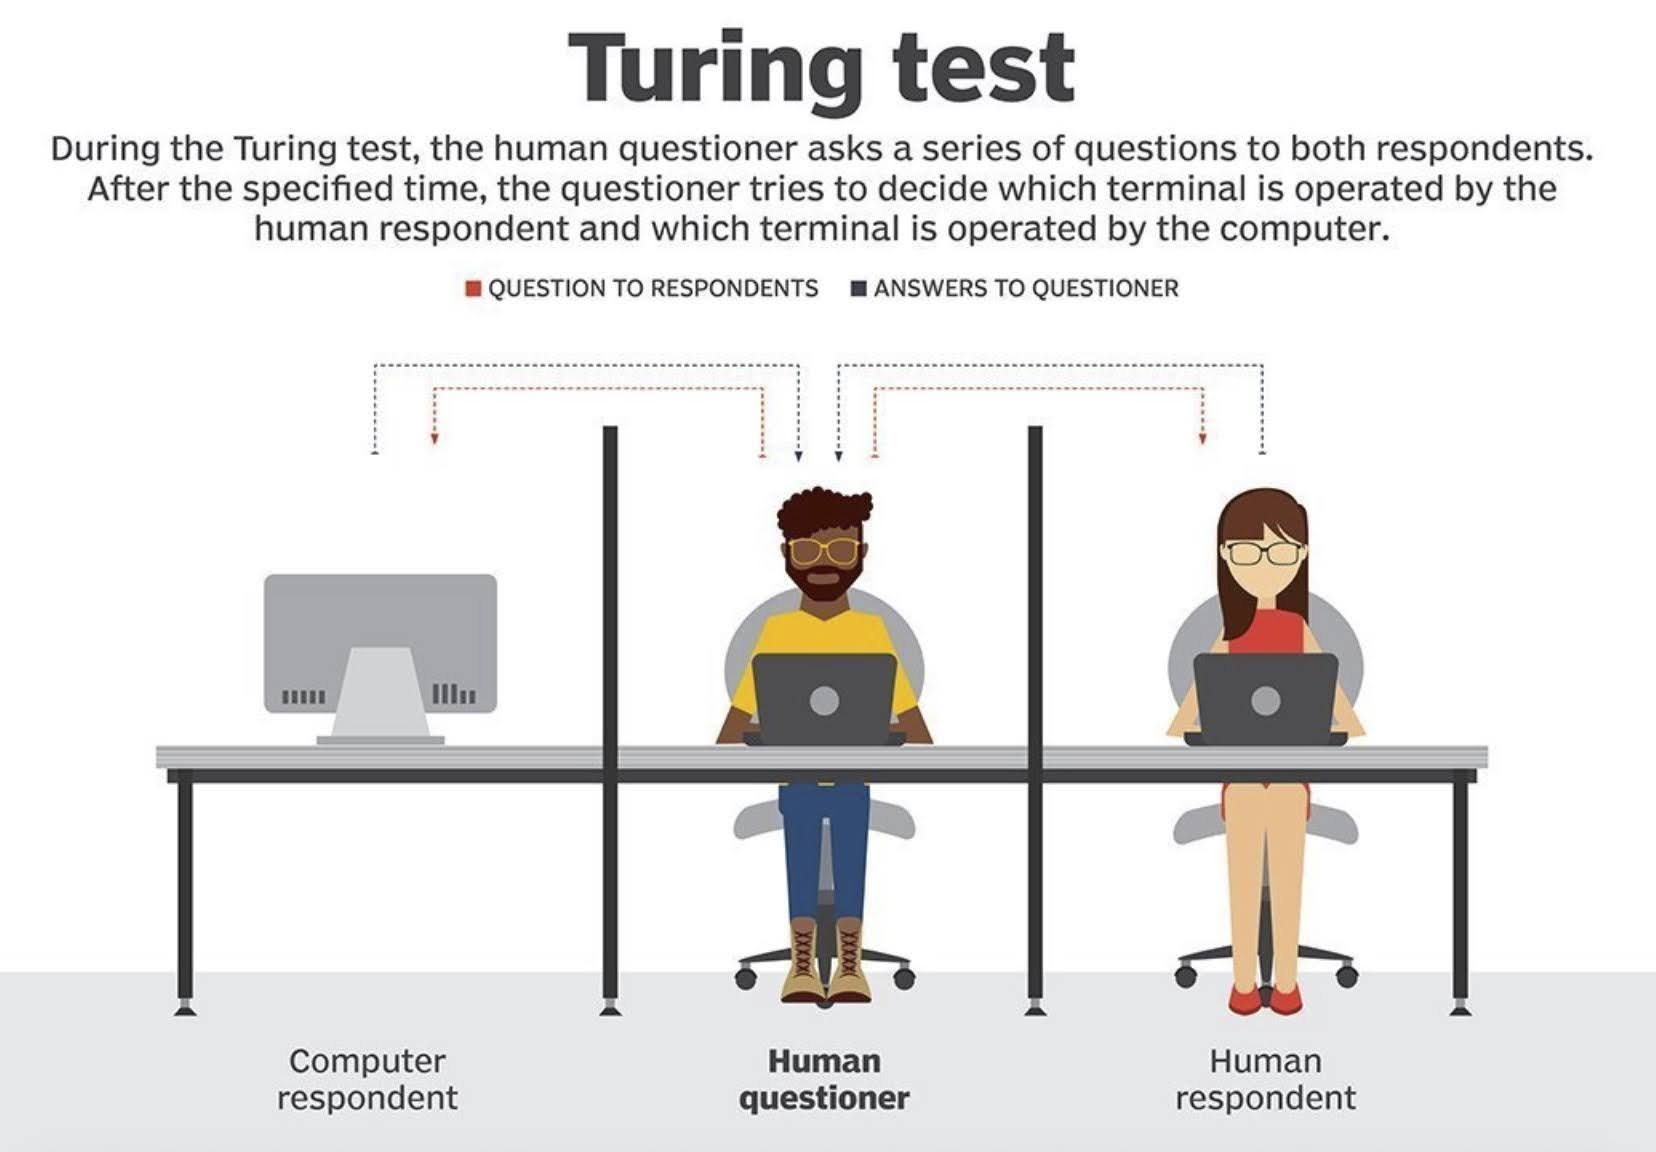 During the Turing test, the human questioner asks a series of questions to both respondents. After the specified time, the questioner tries to decide which terminal is operated by the human respondent and which terminal is operated by the computer.